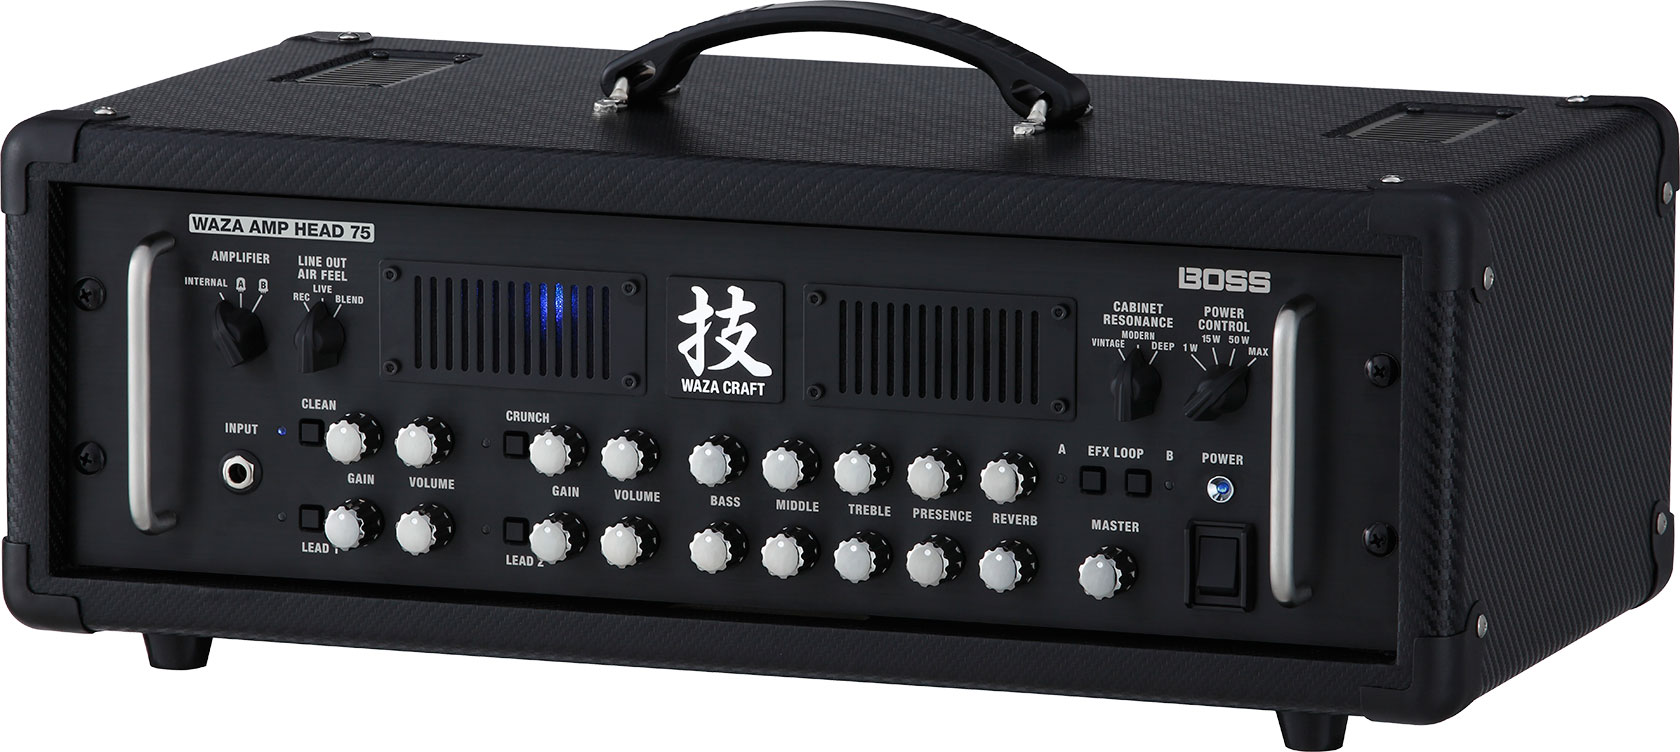 Boss Waza Amp Head 75 Guitar Amplifier